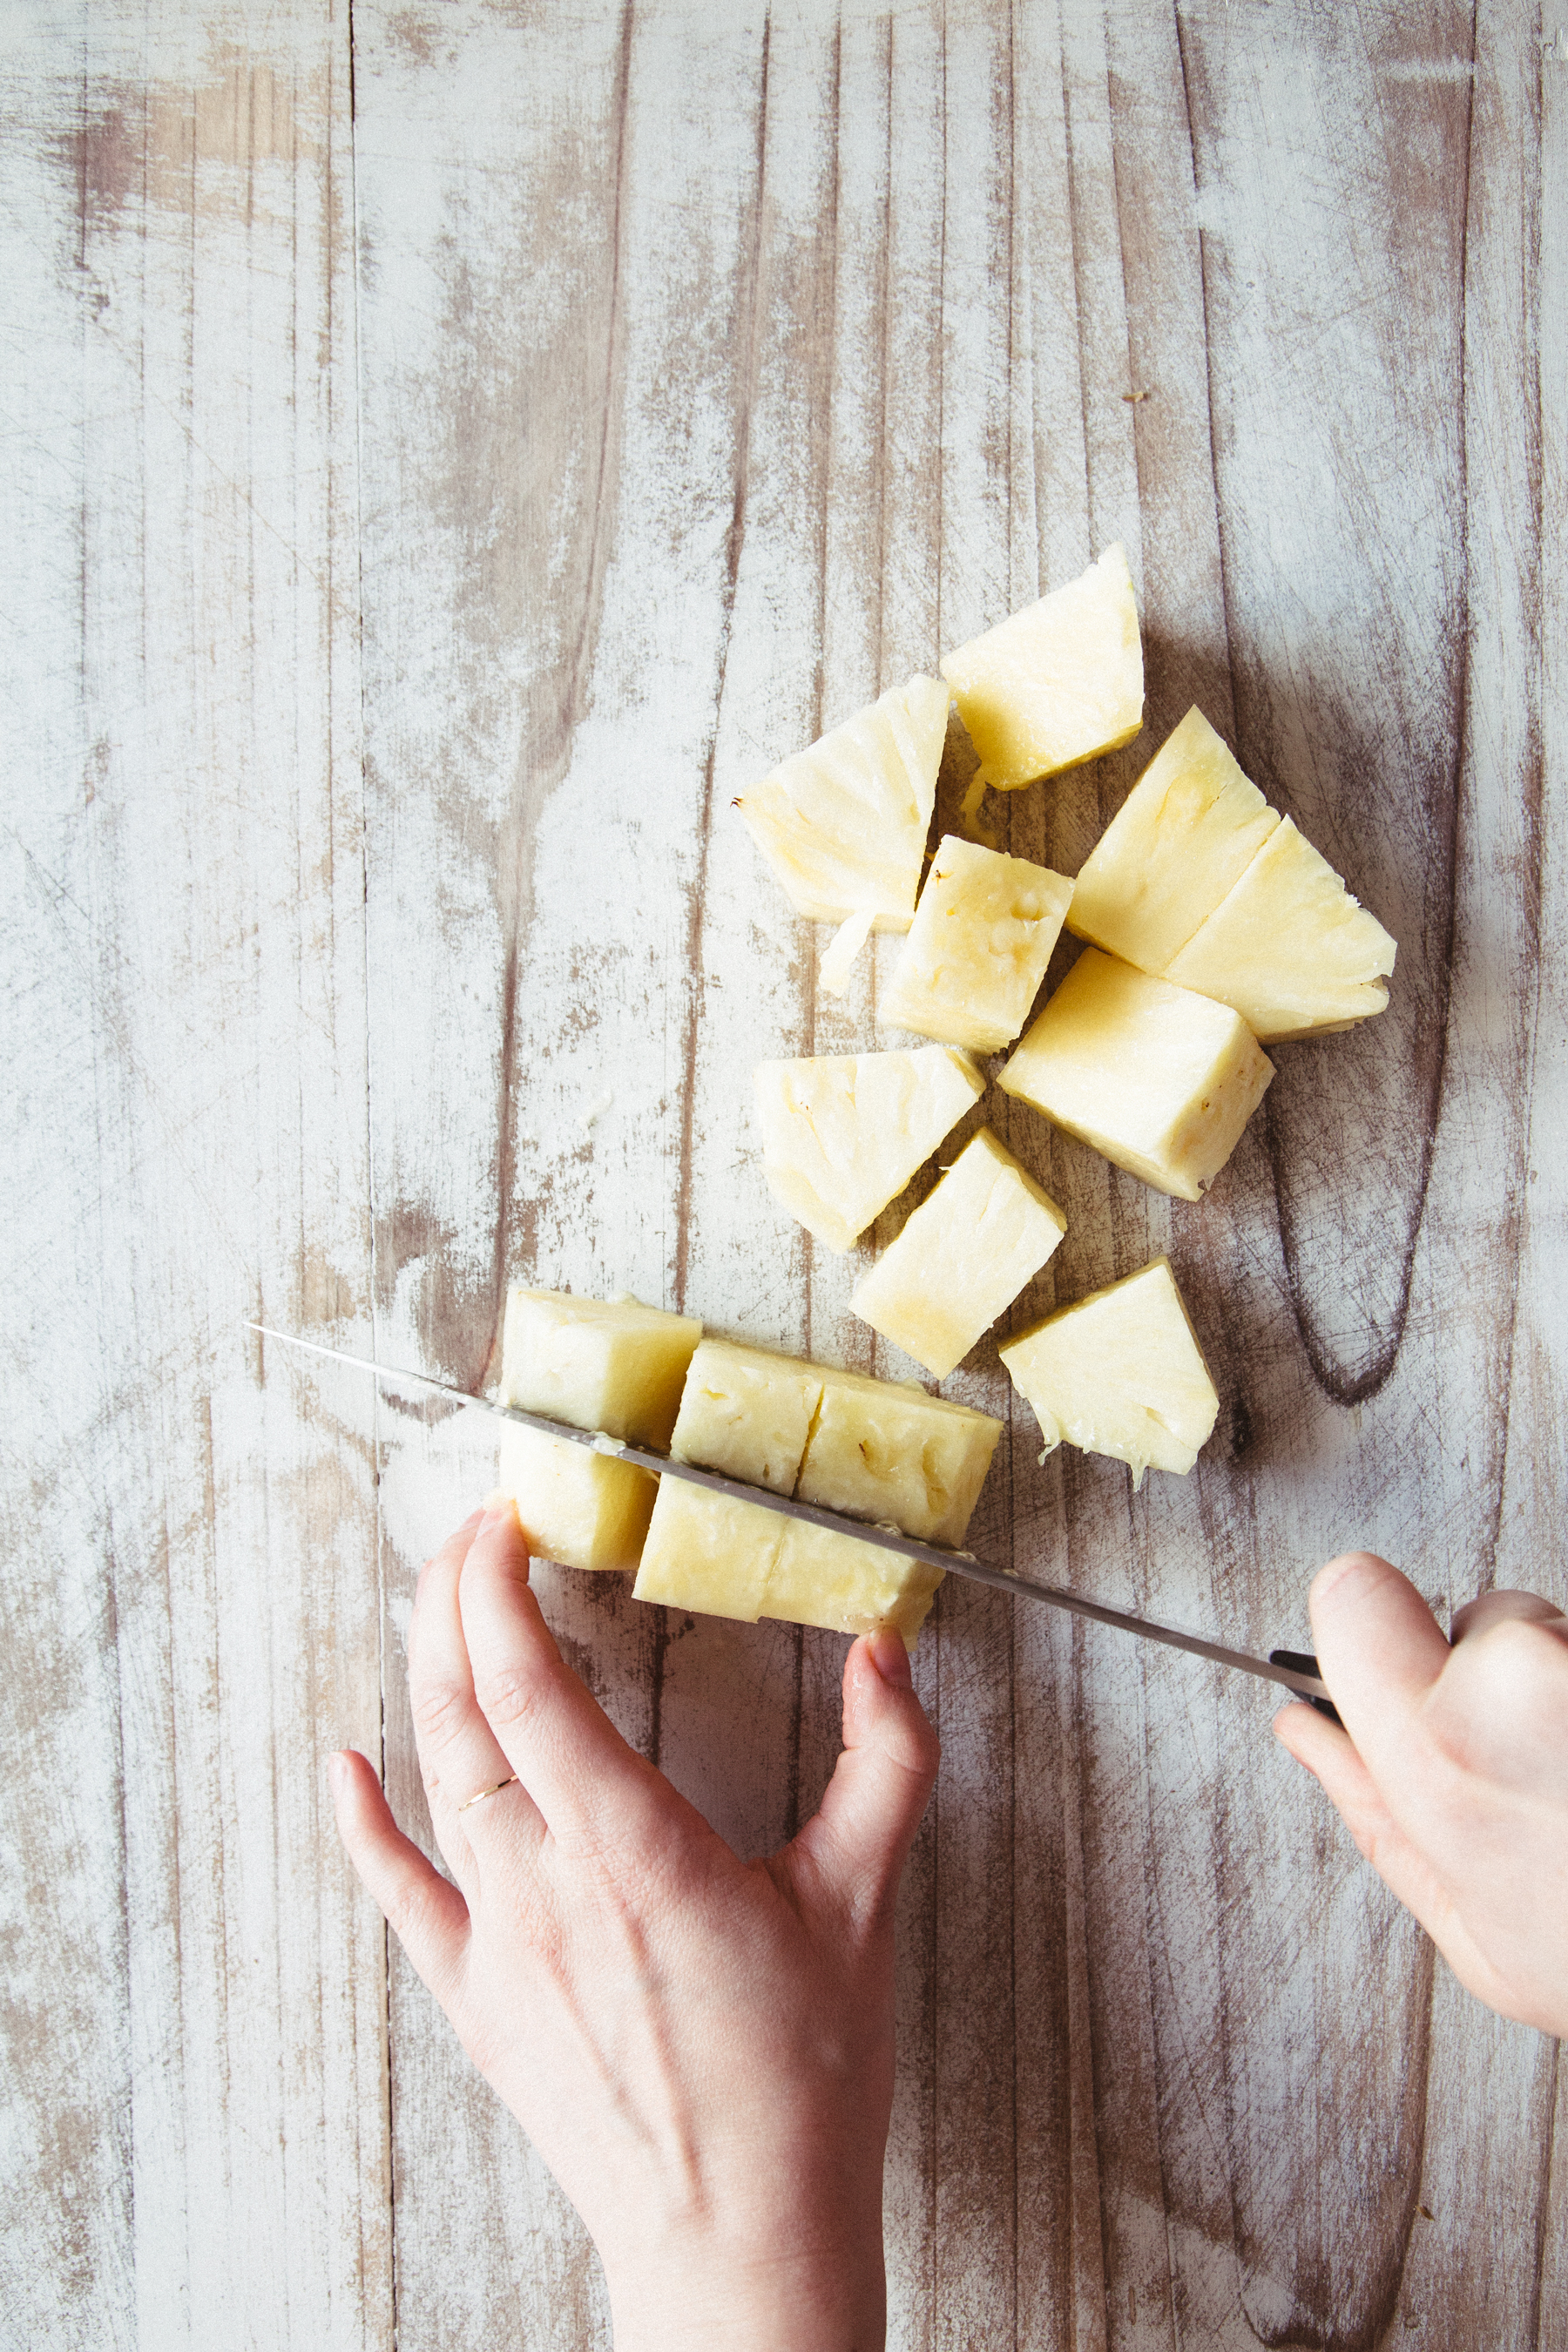 EATME_HOW-TO-CUT-PINEAPPLE_STEP-4-5.jpg